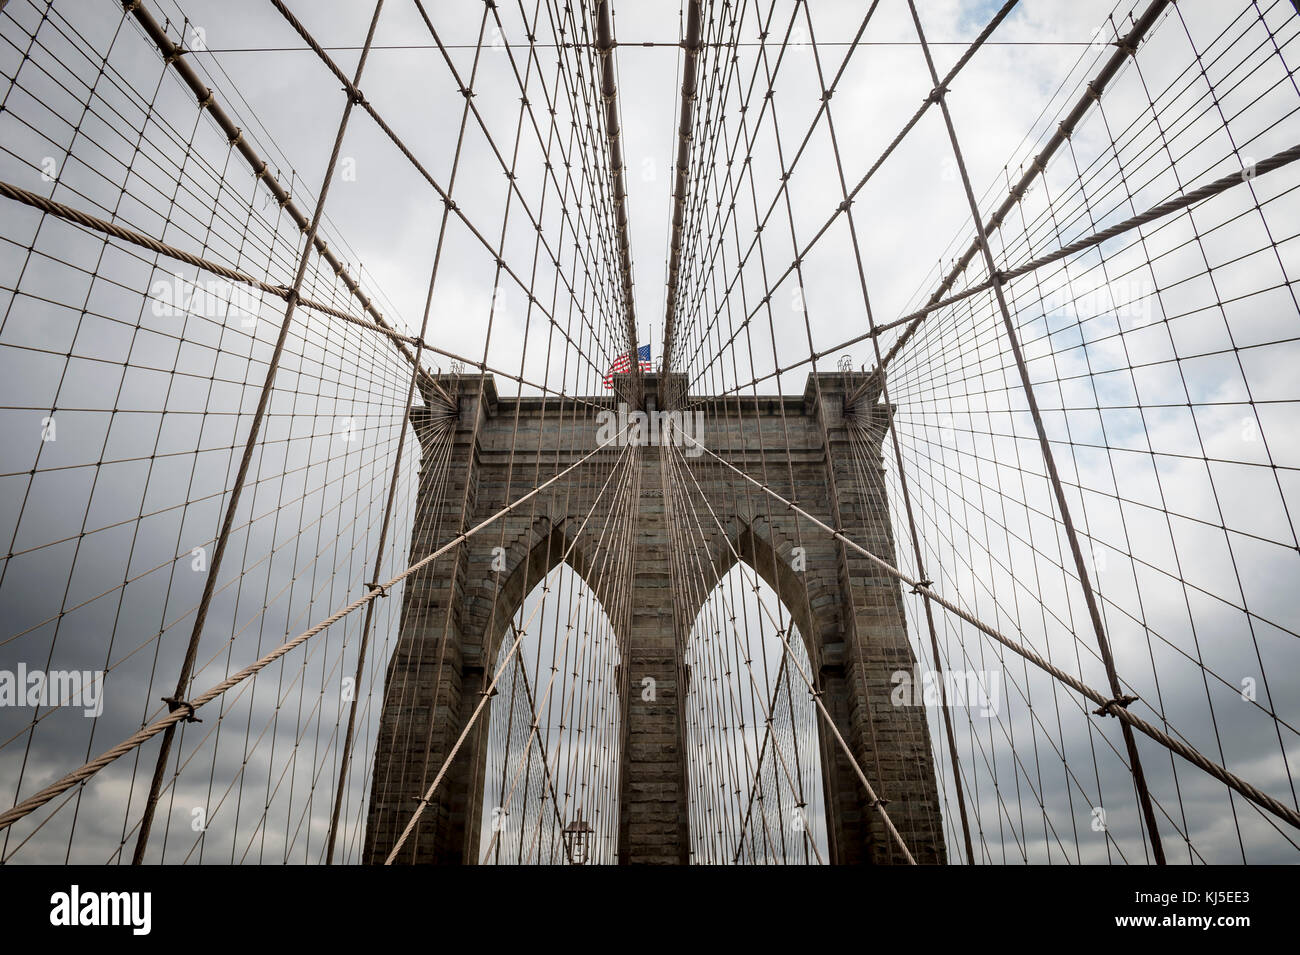 Brooklyn Bridge, New York City hautnah architektonisches Detail Stockbild